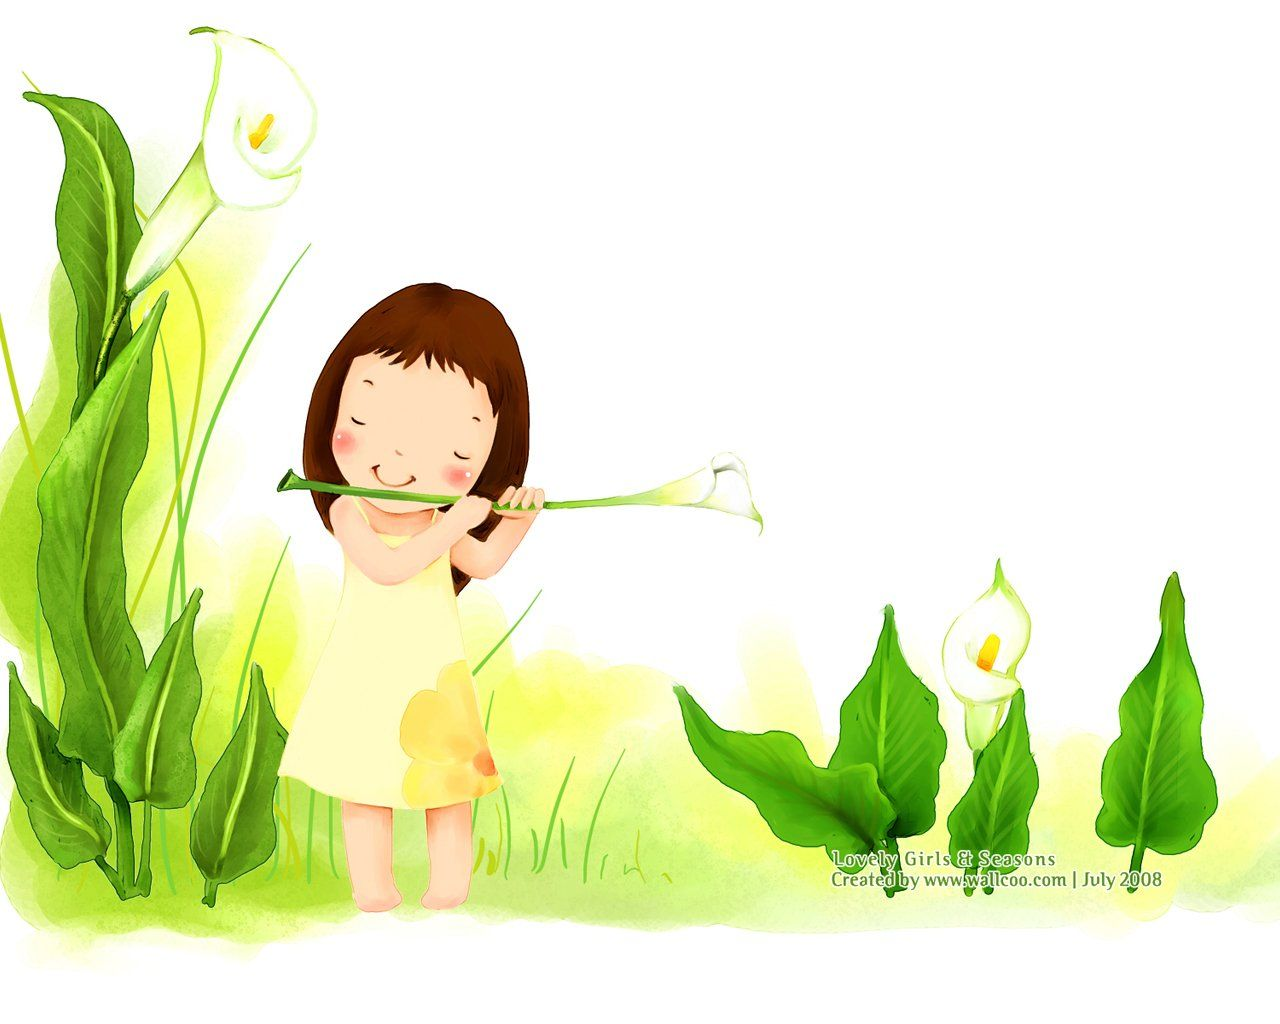 Childrens Illustrations Childrens Day Art Illustrations